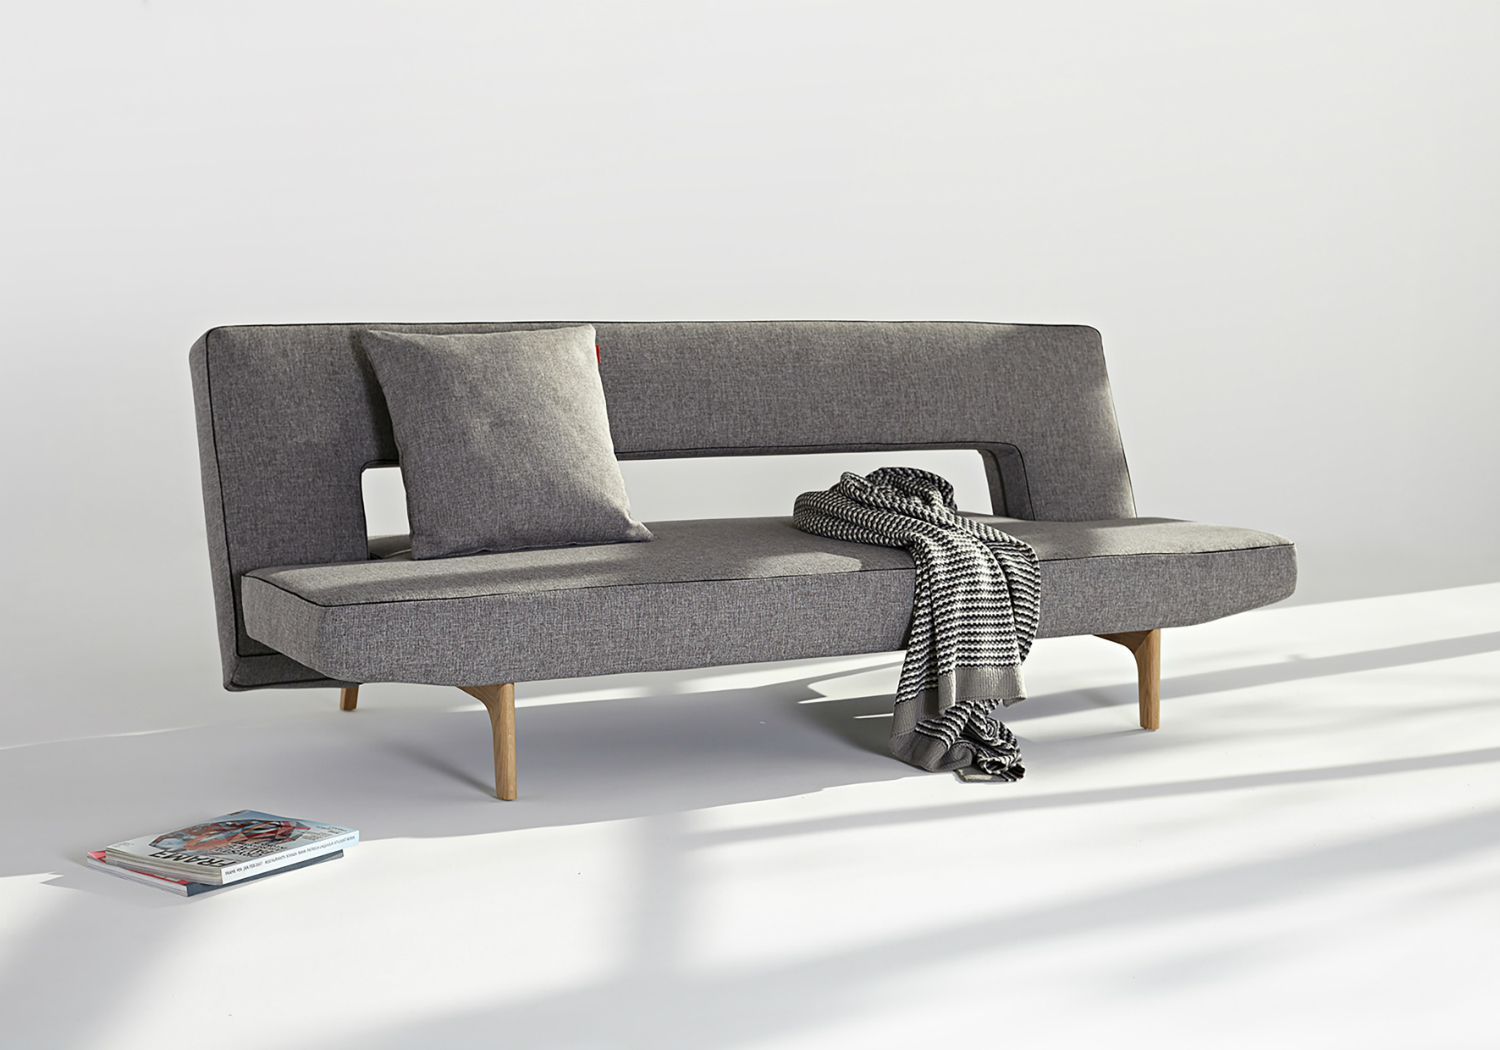 Puzzle wood innovation living melbourne for Edit 03 sofa